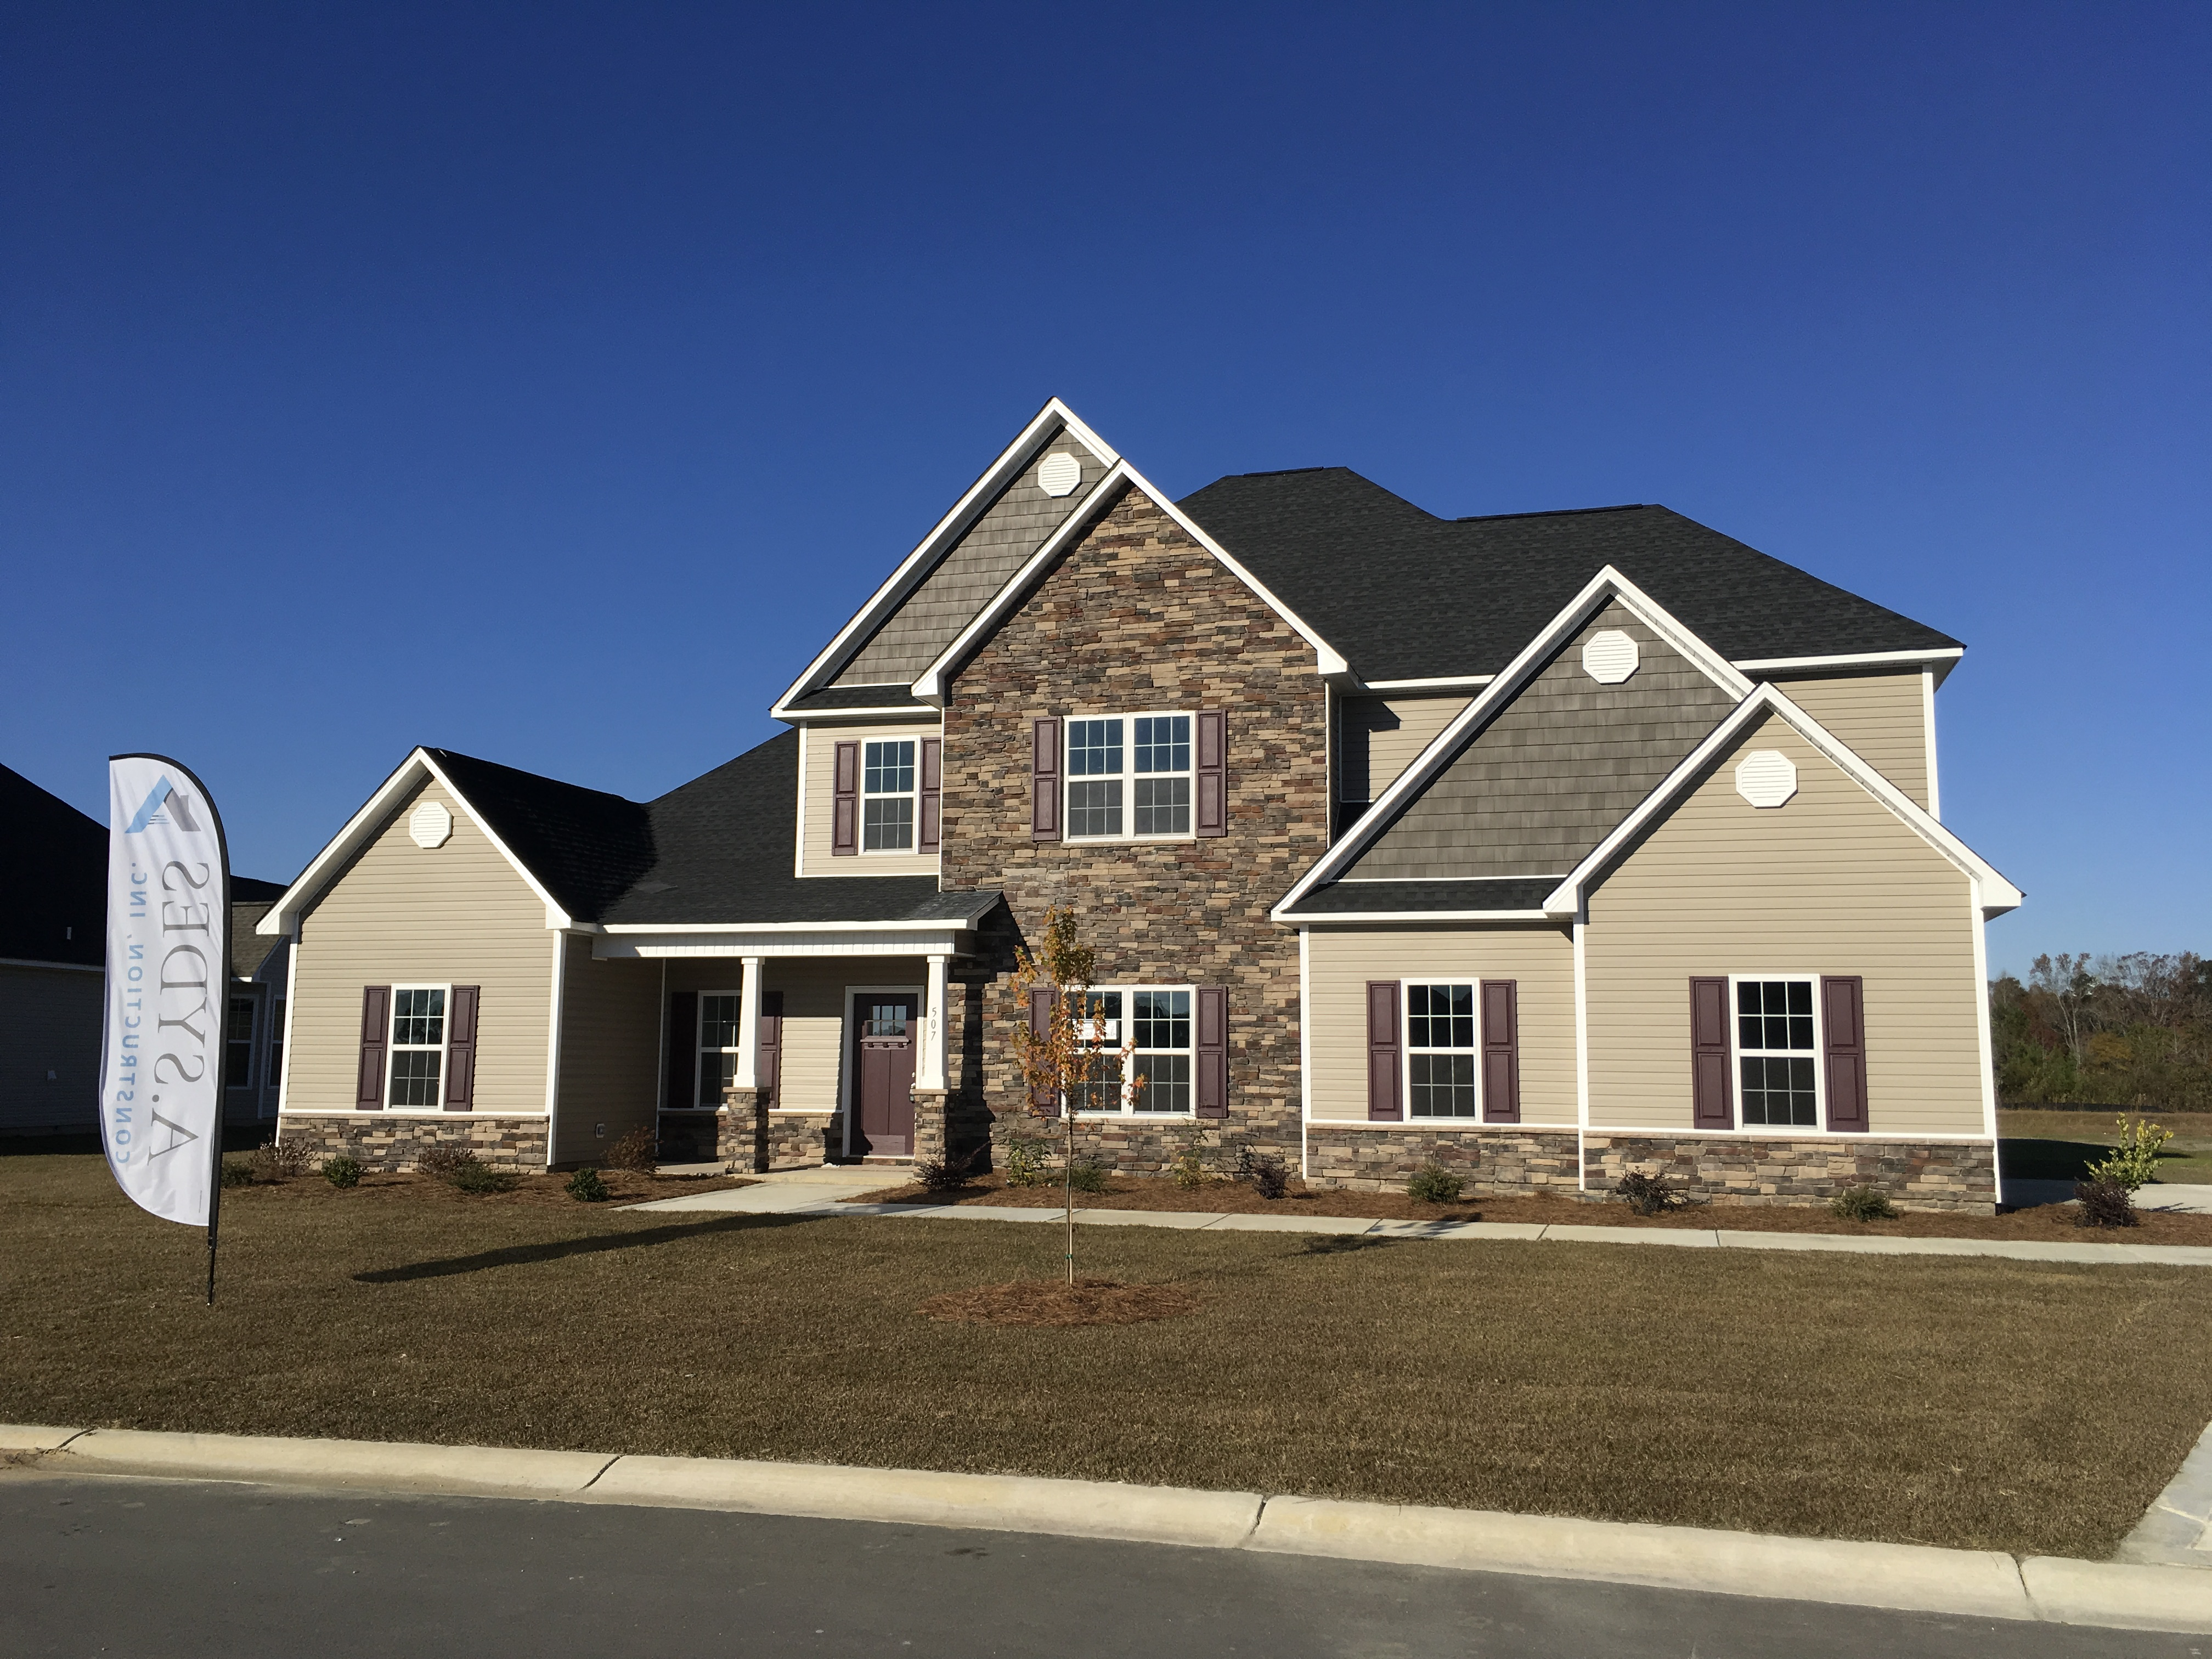 Avalon plan in Bluewater Rise, New Bern NC